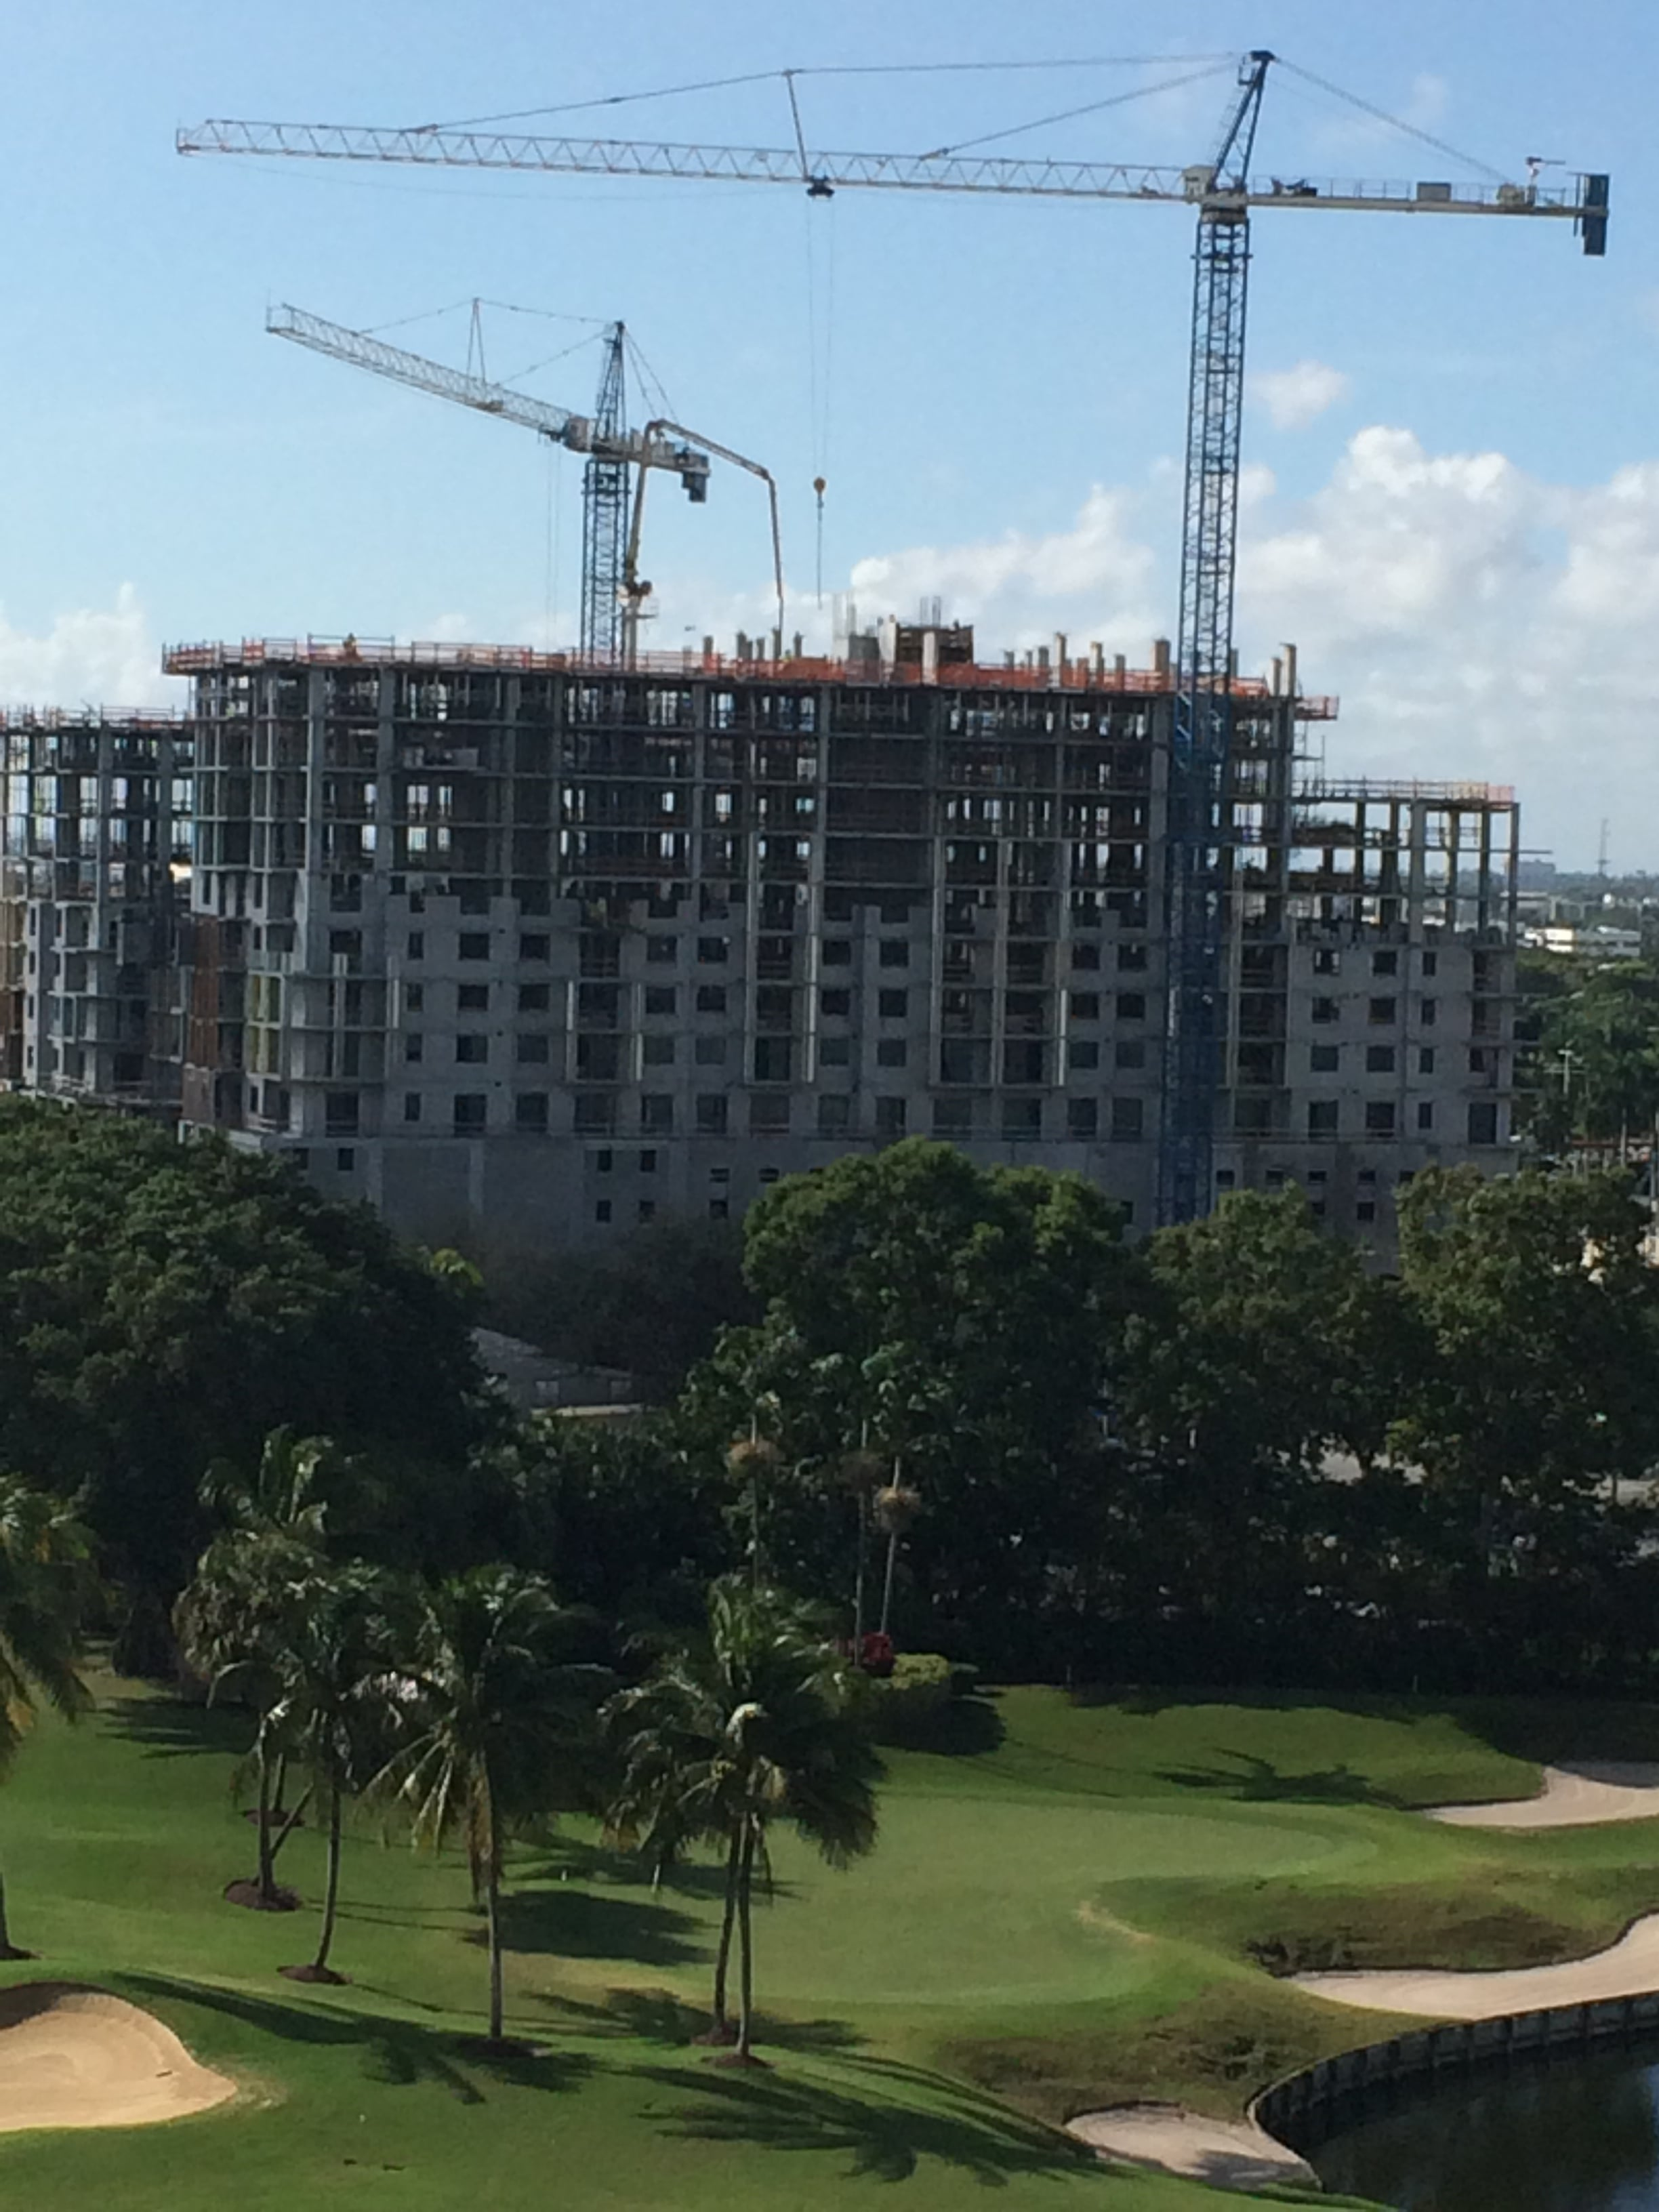 BOCA RATON, VIA MIZNER, THE FIRST OF THREE MAMMOTH NEW BUILDINGS IN DOWNTOWN BOCA.NOVEMBER 15, 2015.